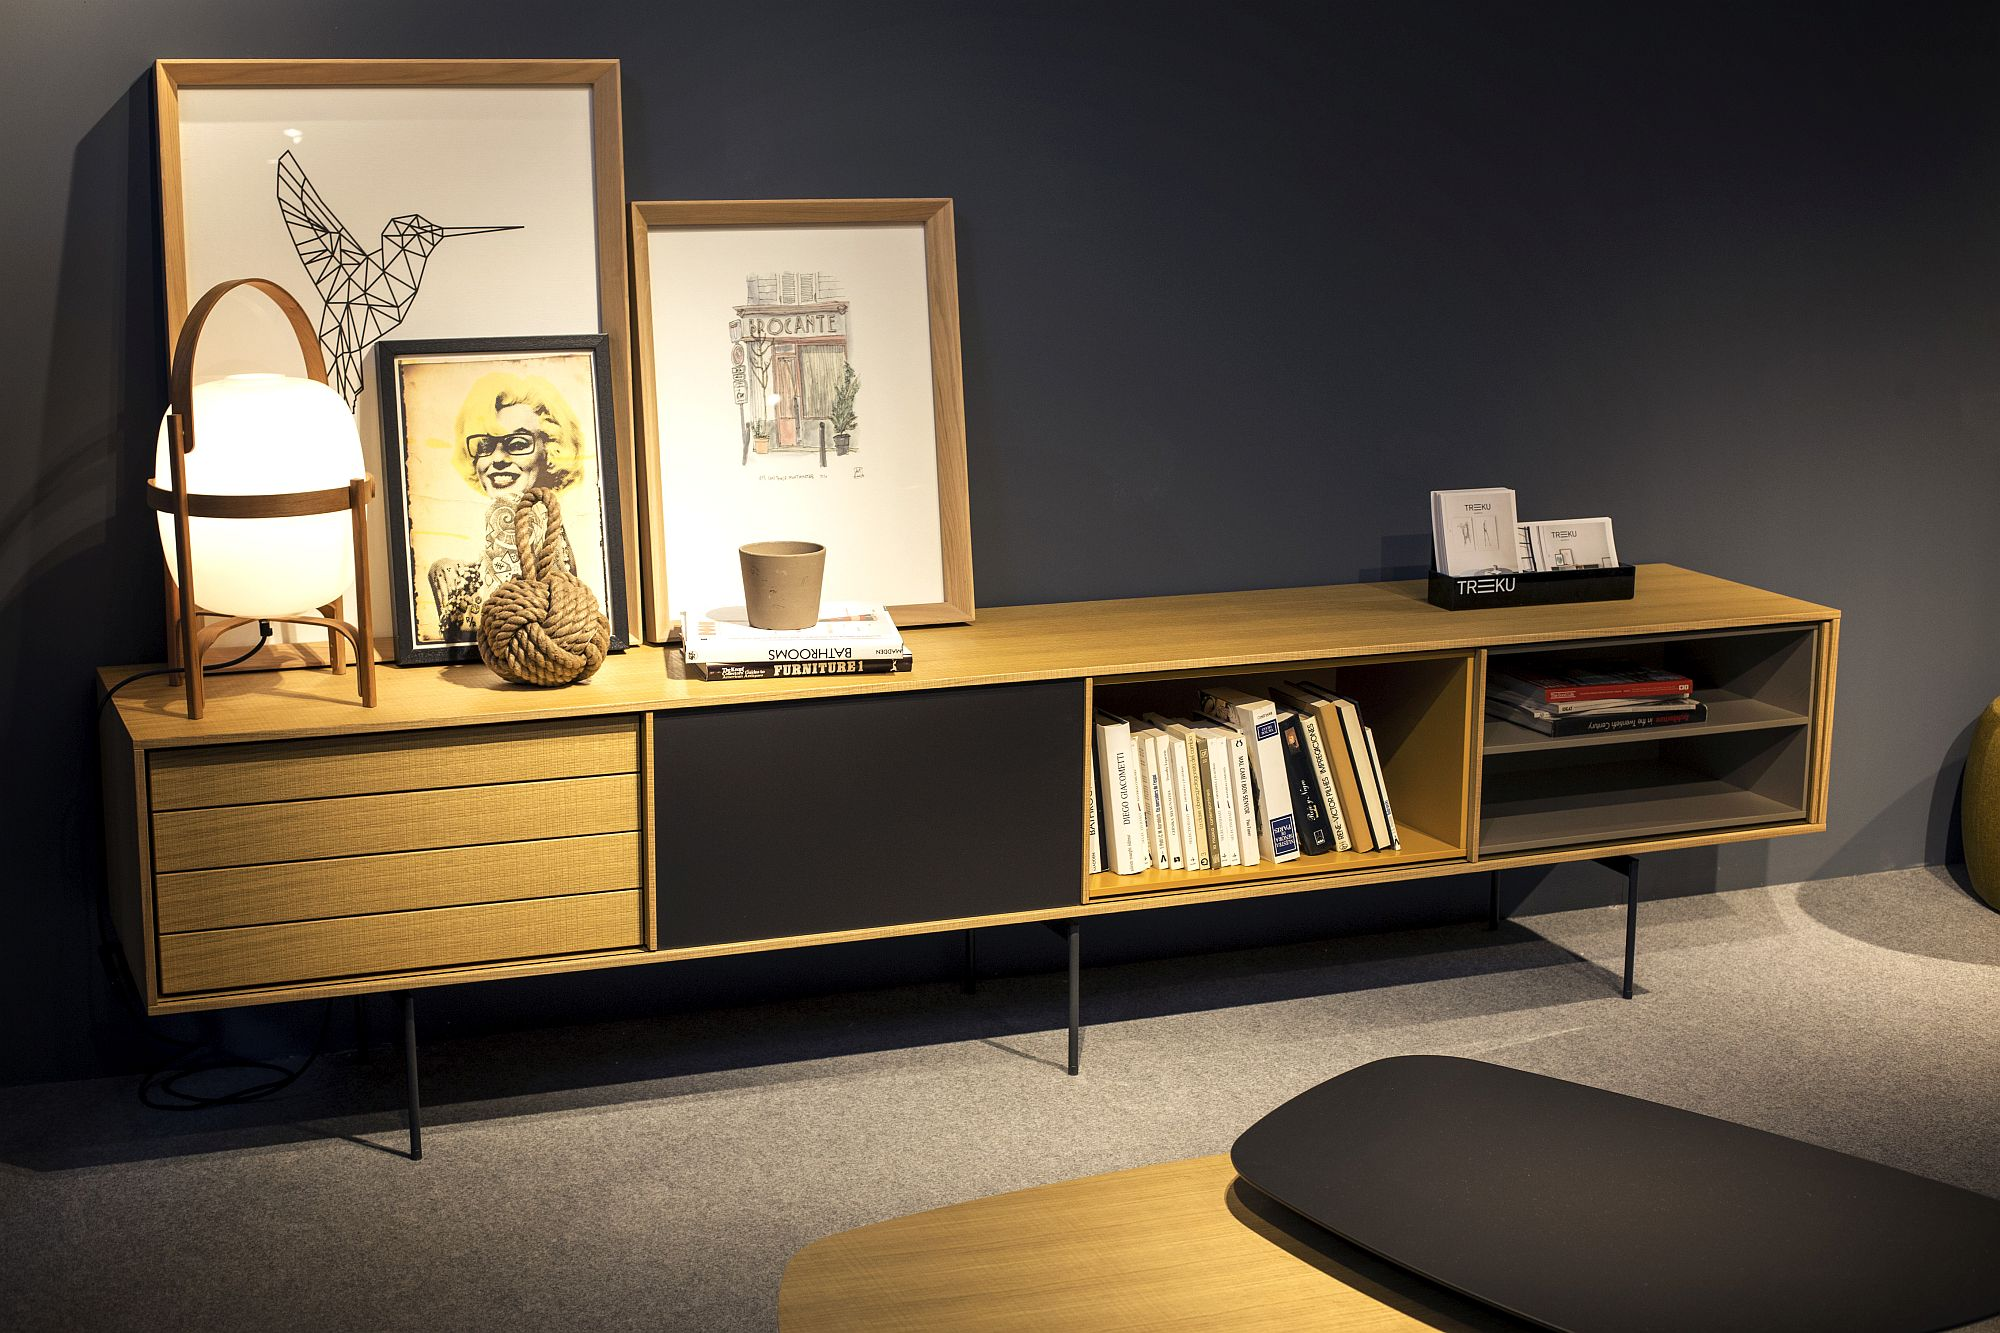 Midcentury modern sideboard can also offer storage space